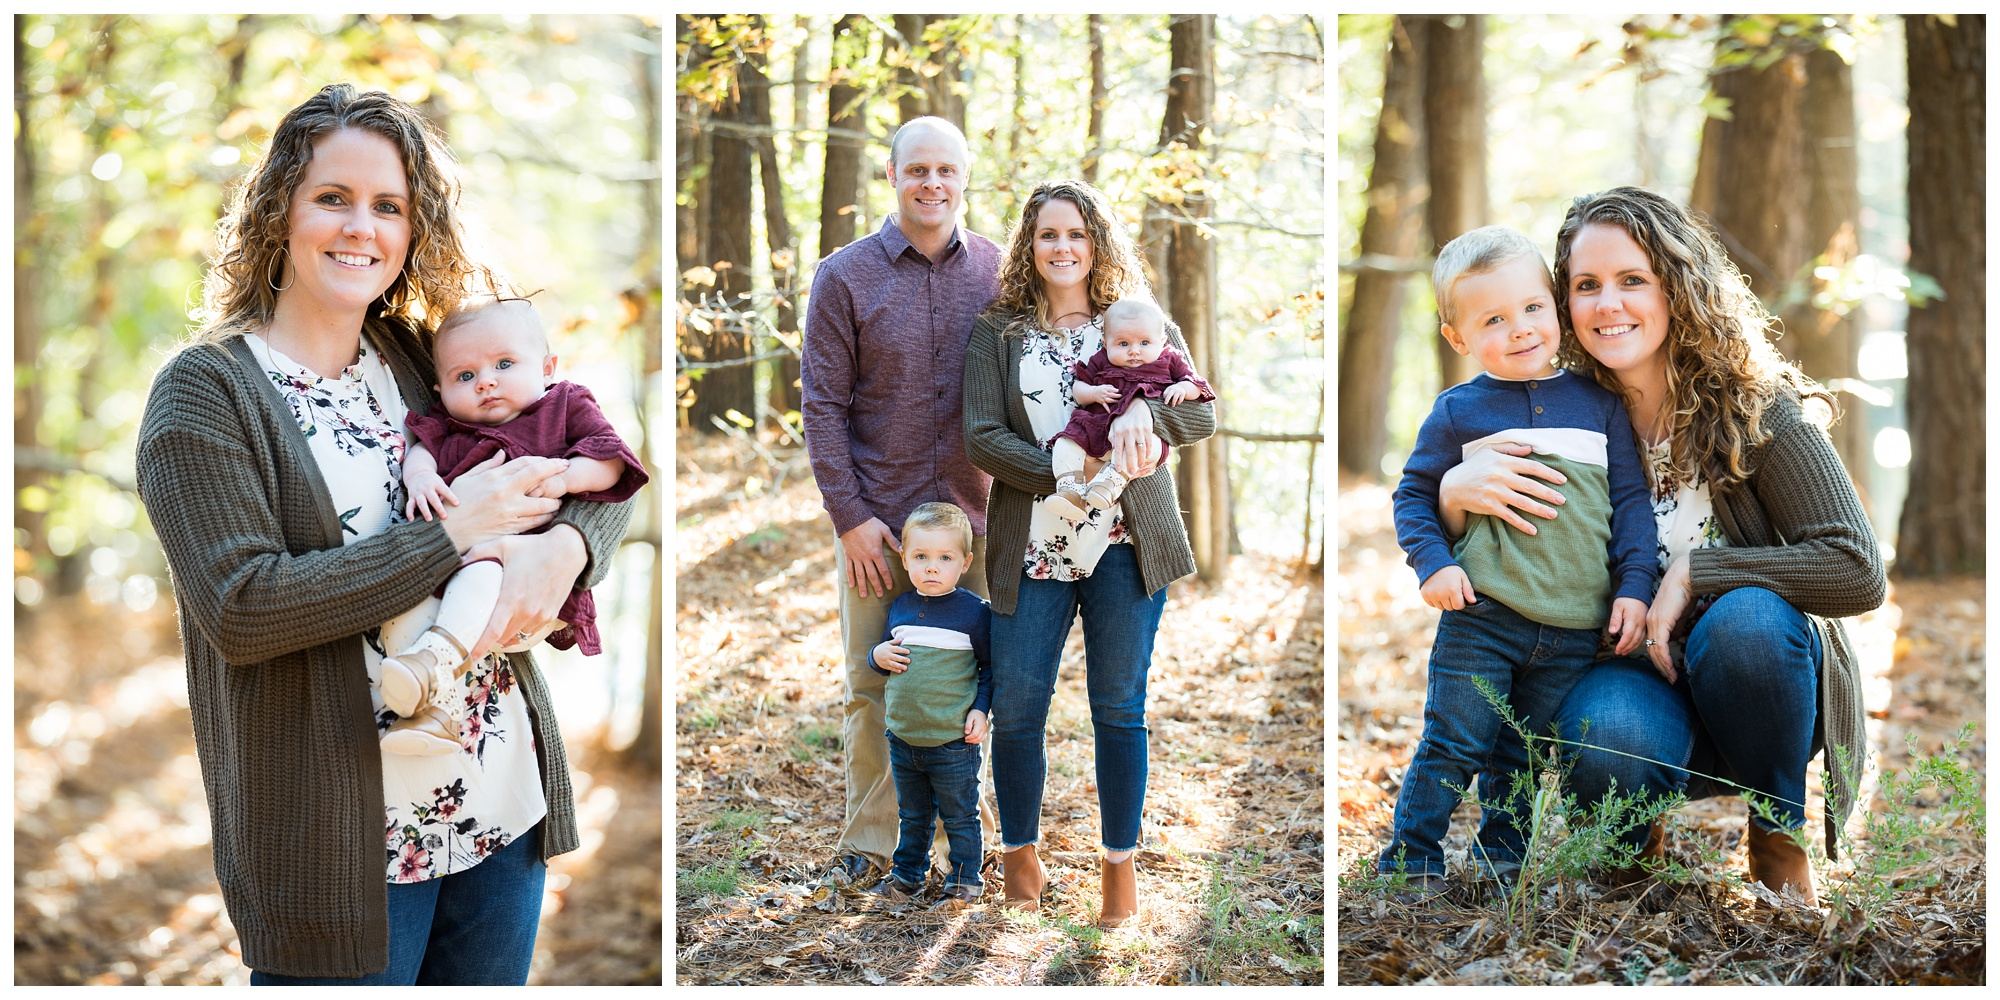 Coleman Family Portraits | Sandy Bottom Park